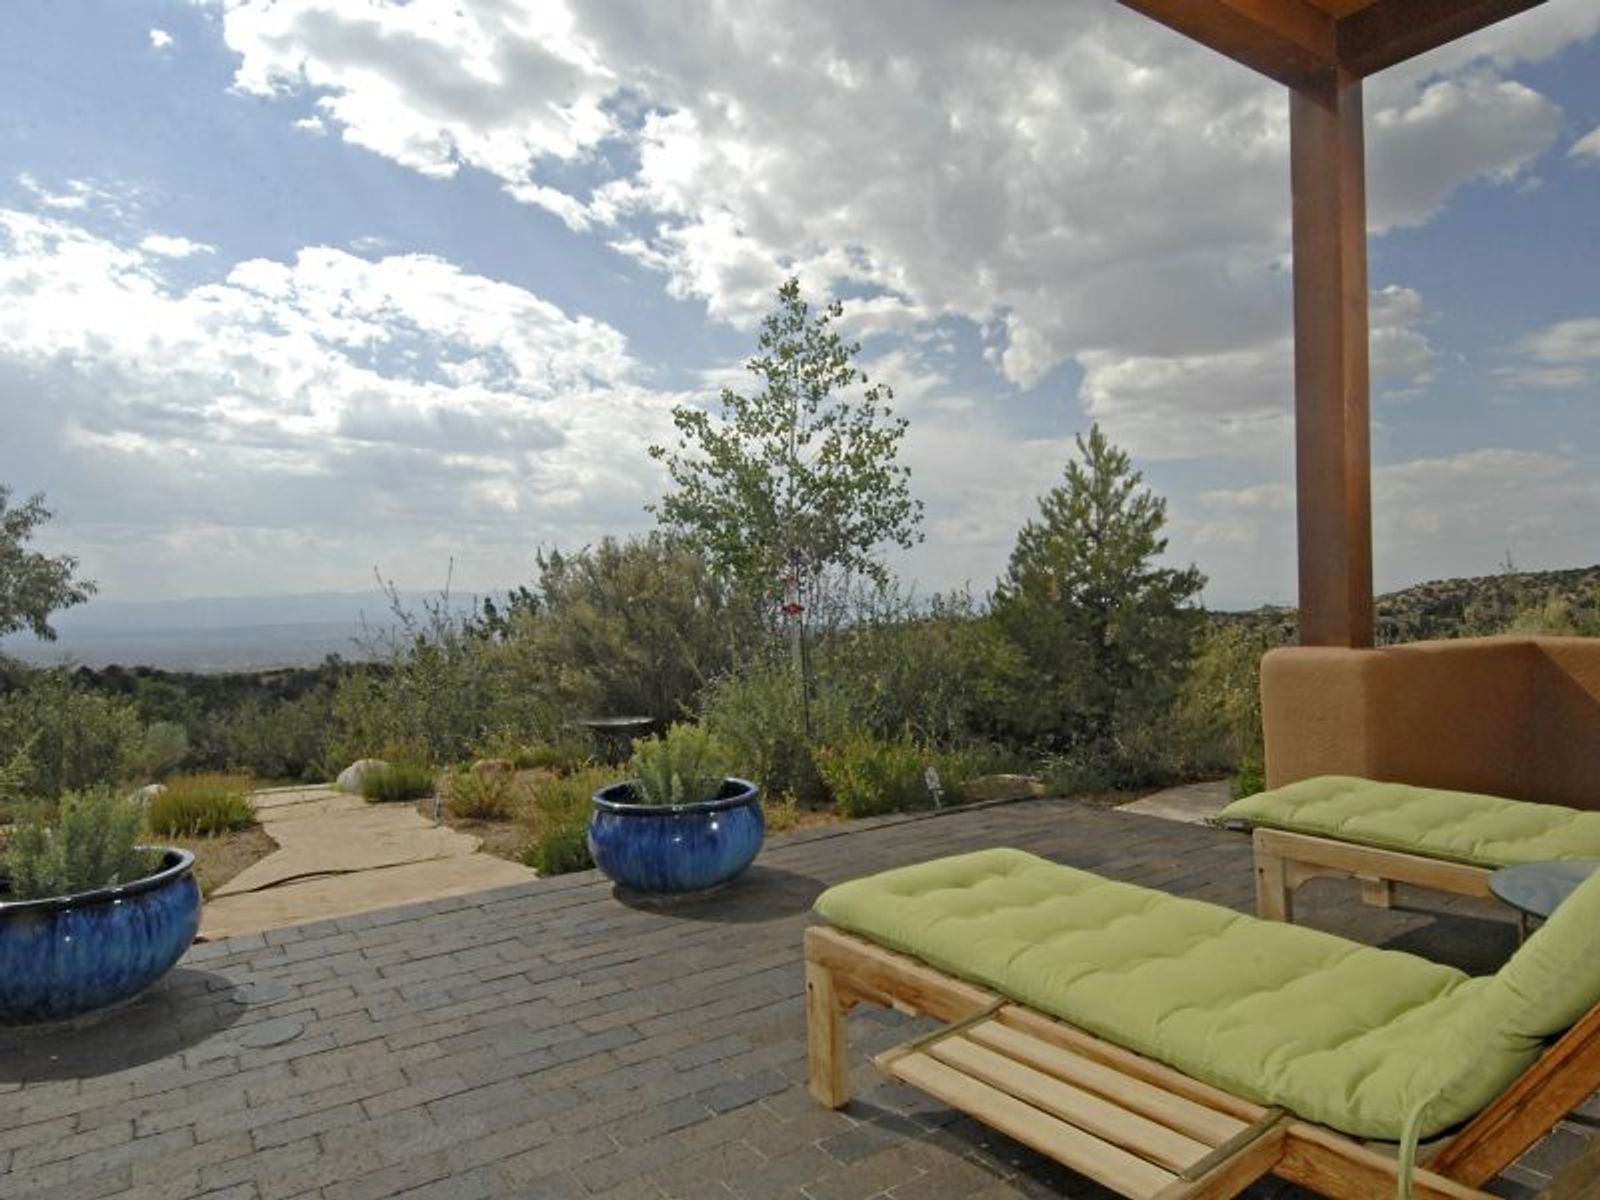 79 Camino Amor, Tesuque NM Single Family Home - Santa Fe Real Estate